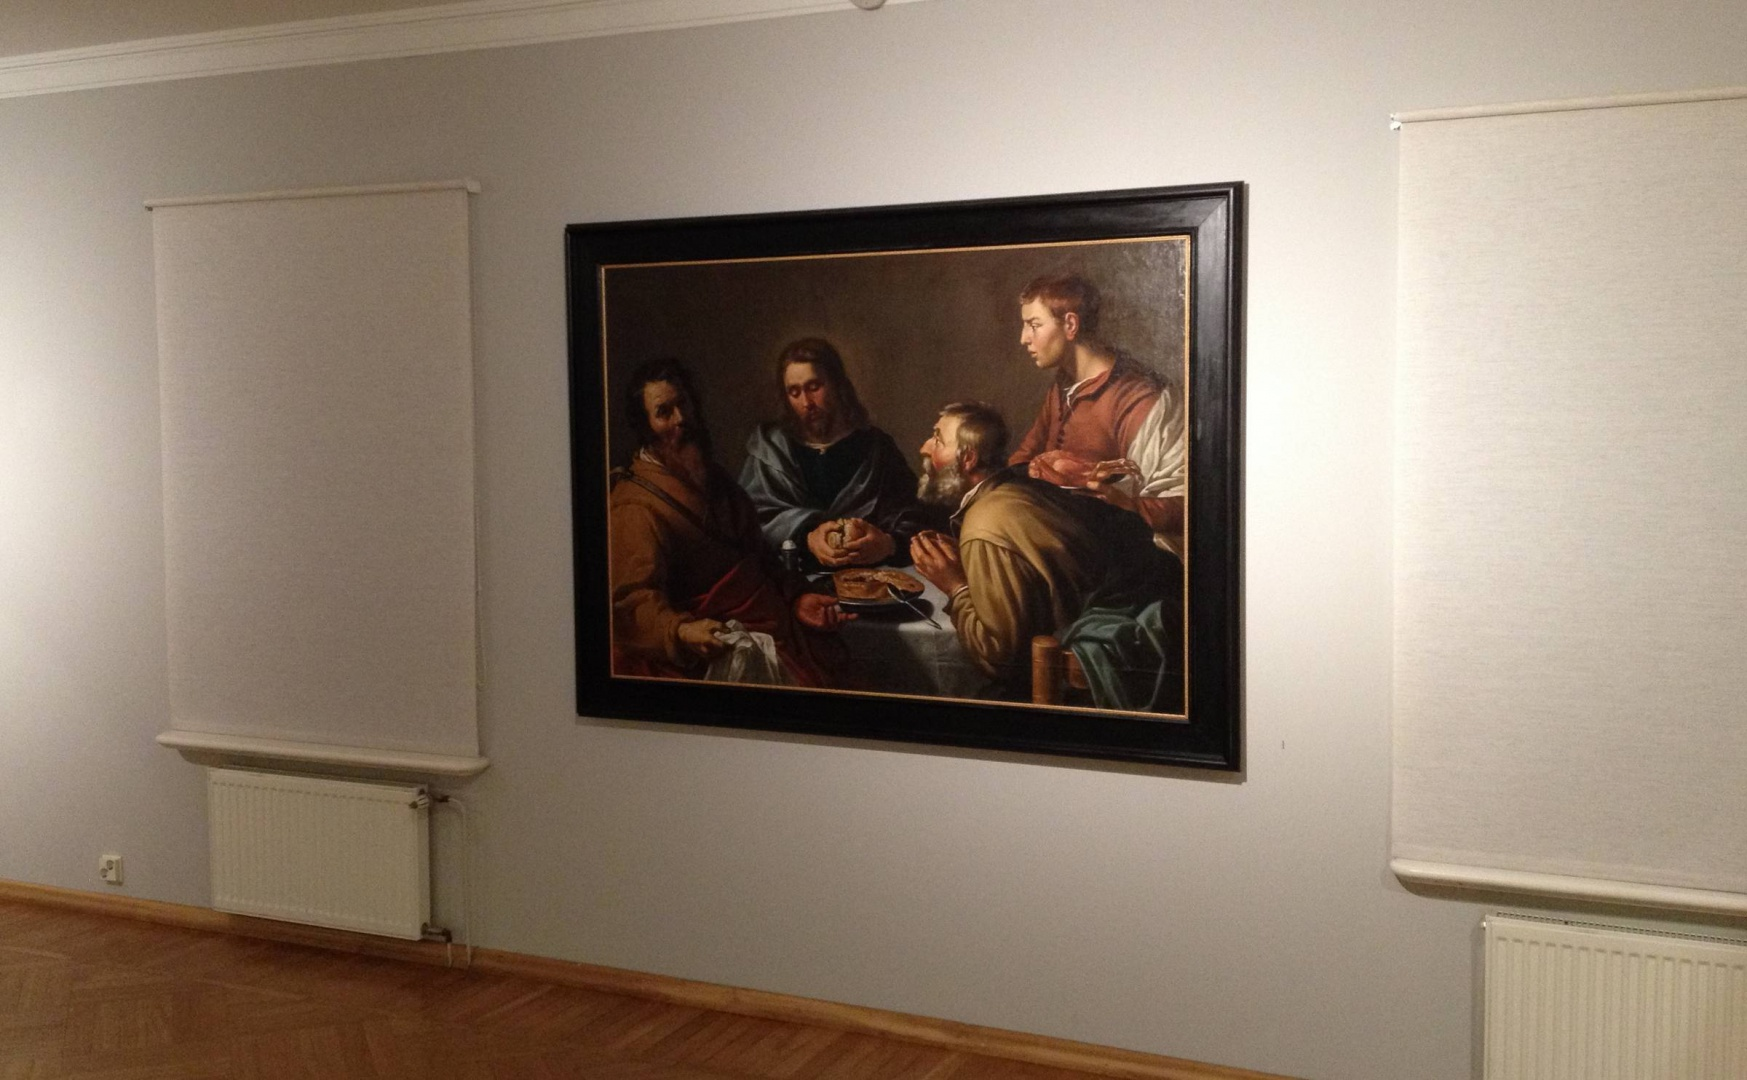 ill 5. Supper in Emmaus EKM Mi179 displayed at the Mikkel Museum. Legend – 1997 donated by Johannes Mikkel, comes from Uue-Suislepa Manor, conserved in 2007-2010 by Maris Klaas. (EKM). Photo – V. Vissel.